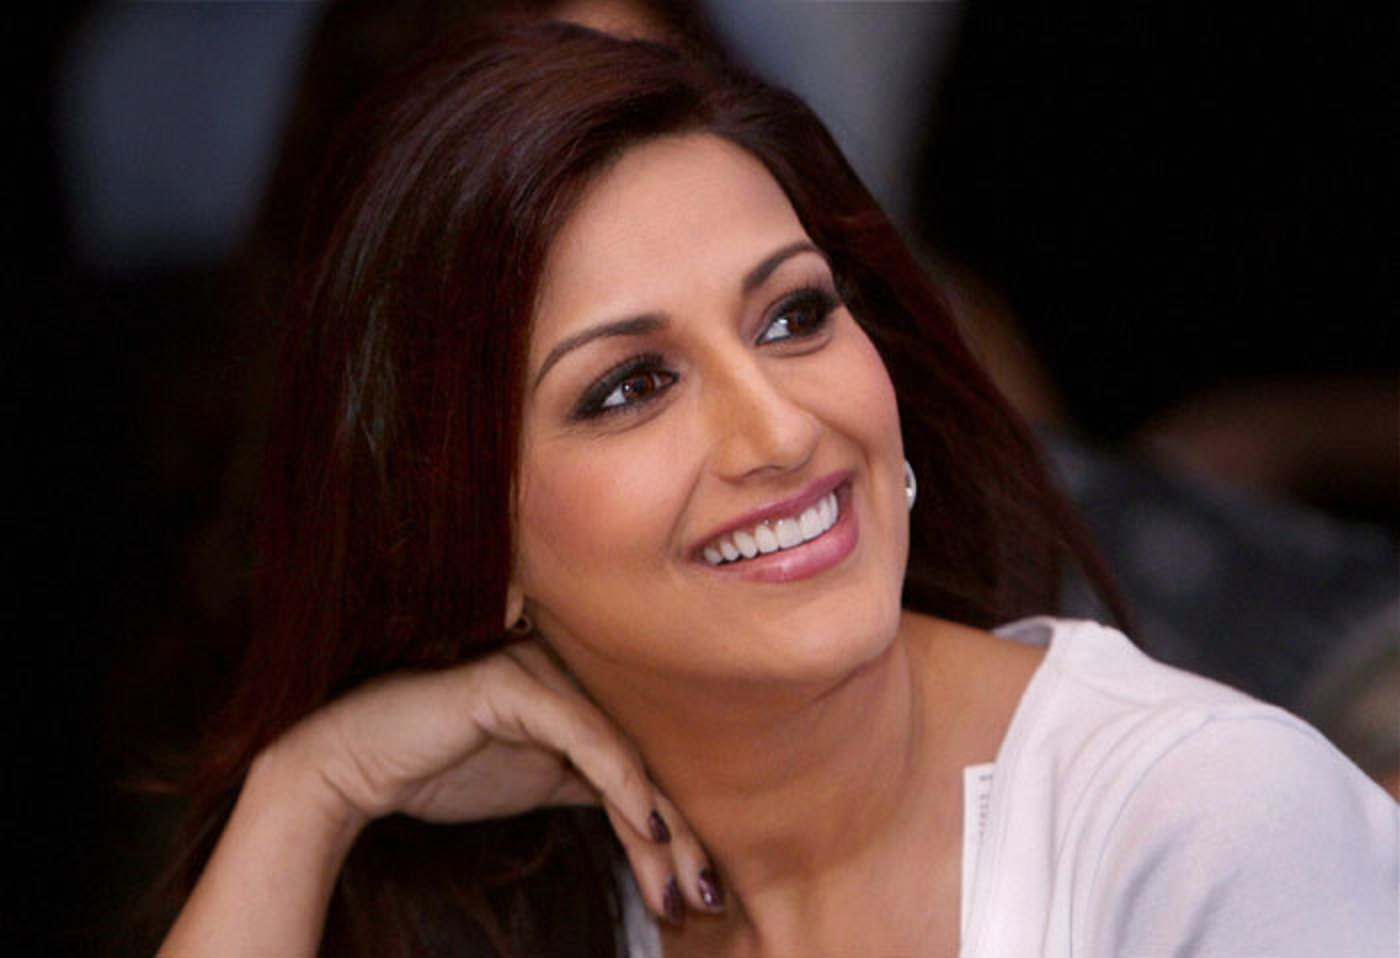 Sonali Bendre Smiling Wallpapers